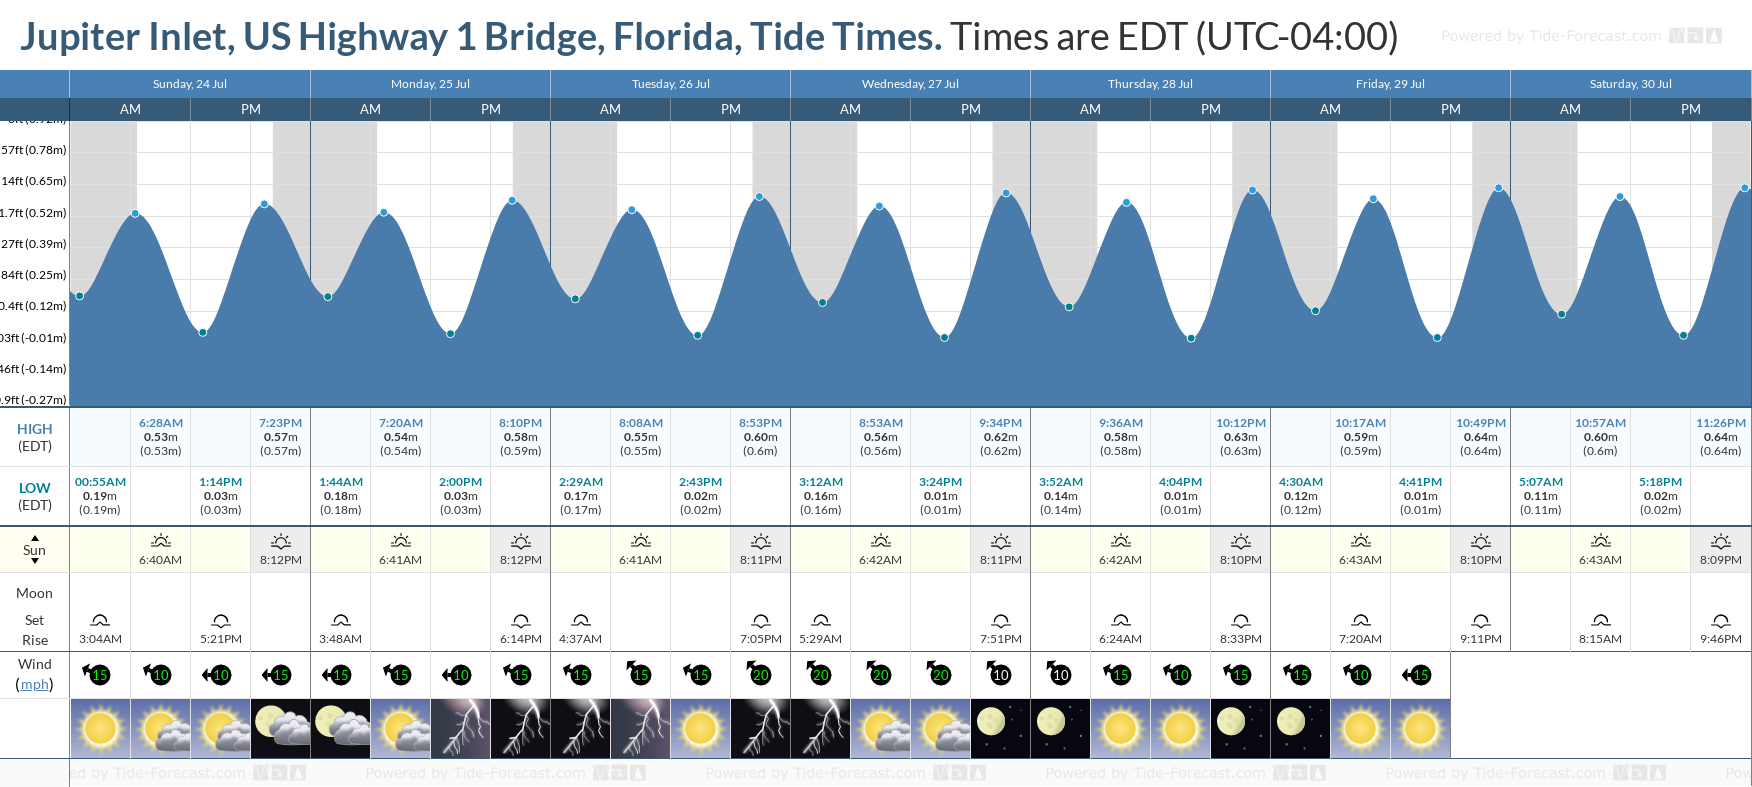 Jupiter Inlet, US Highway 1 Bridge, Florida Tide Chart including high and low tide tide times for the next 7 days